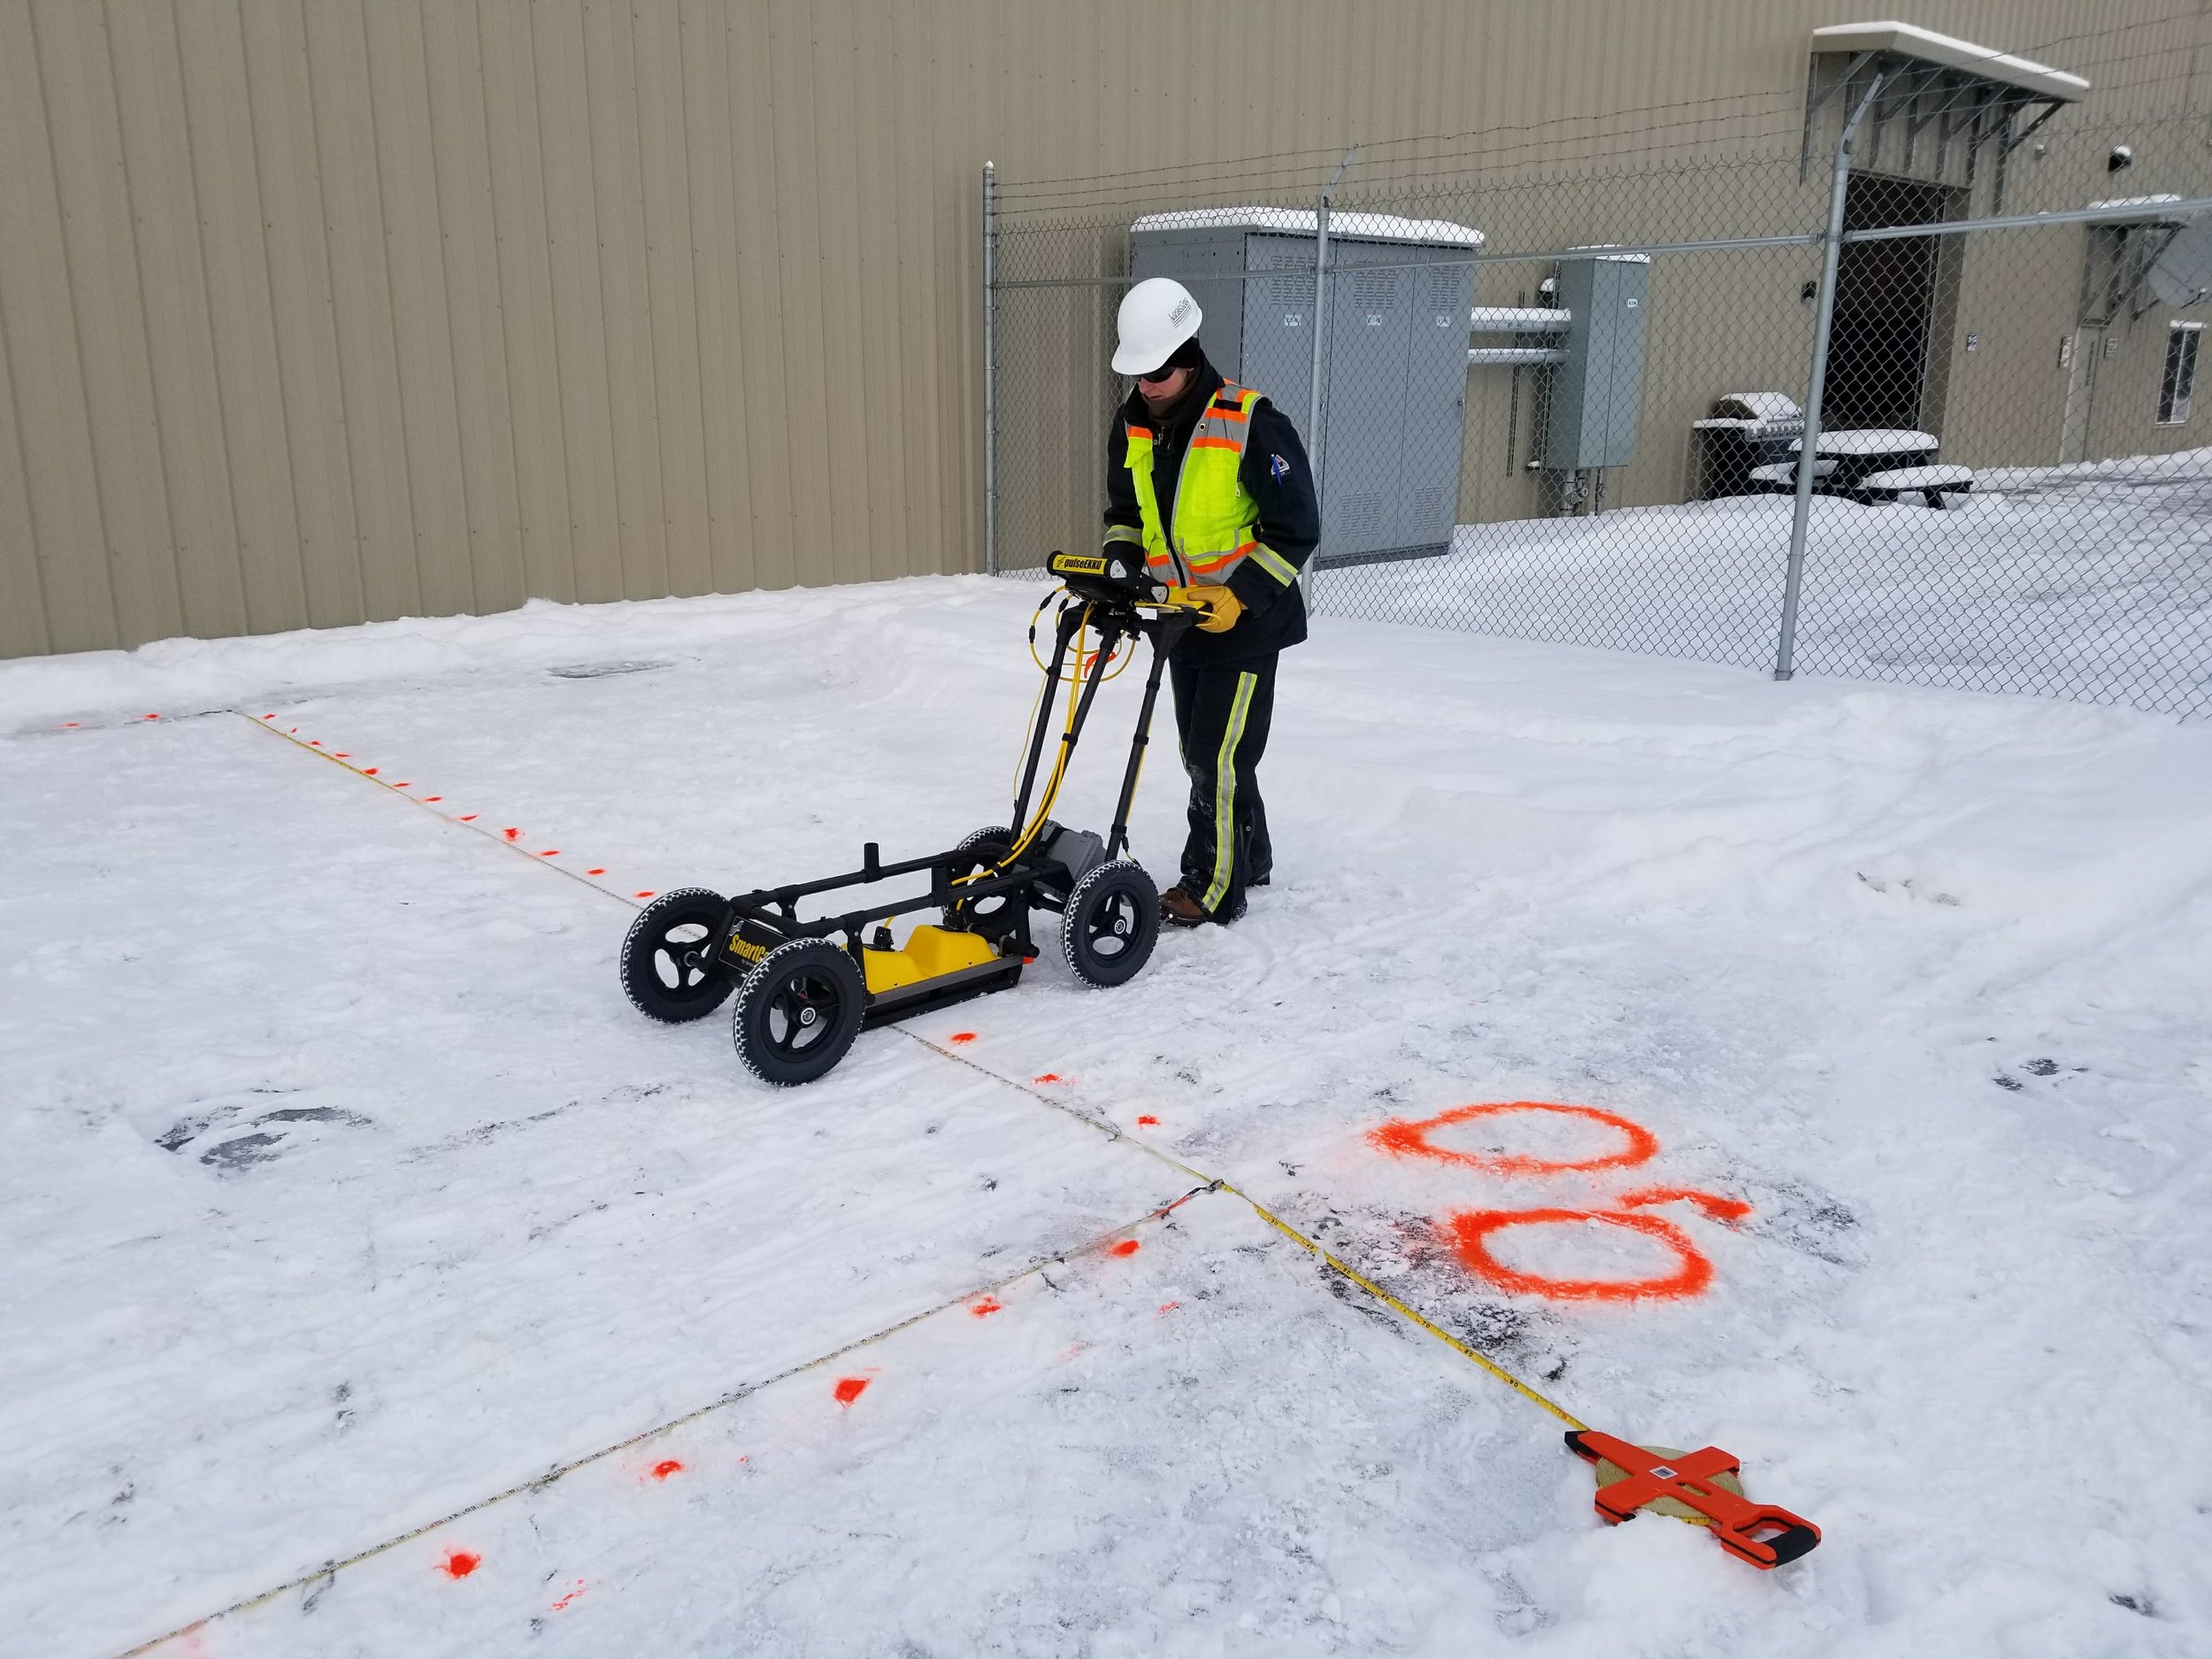 GPR data collection in winter at the Anchorage International Airport